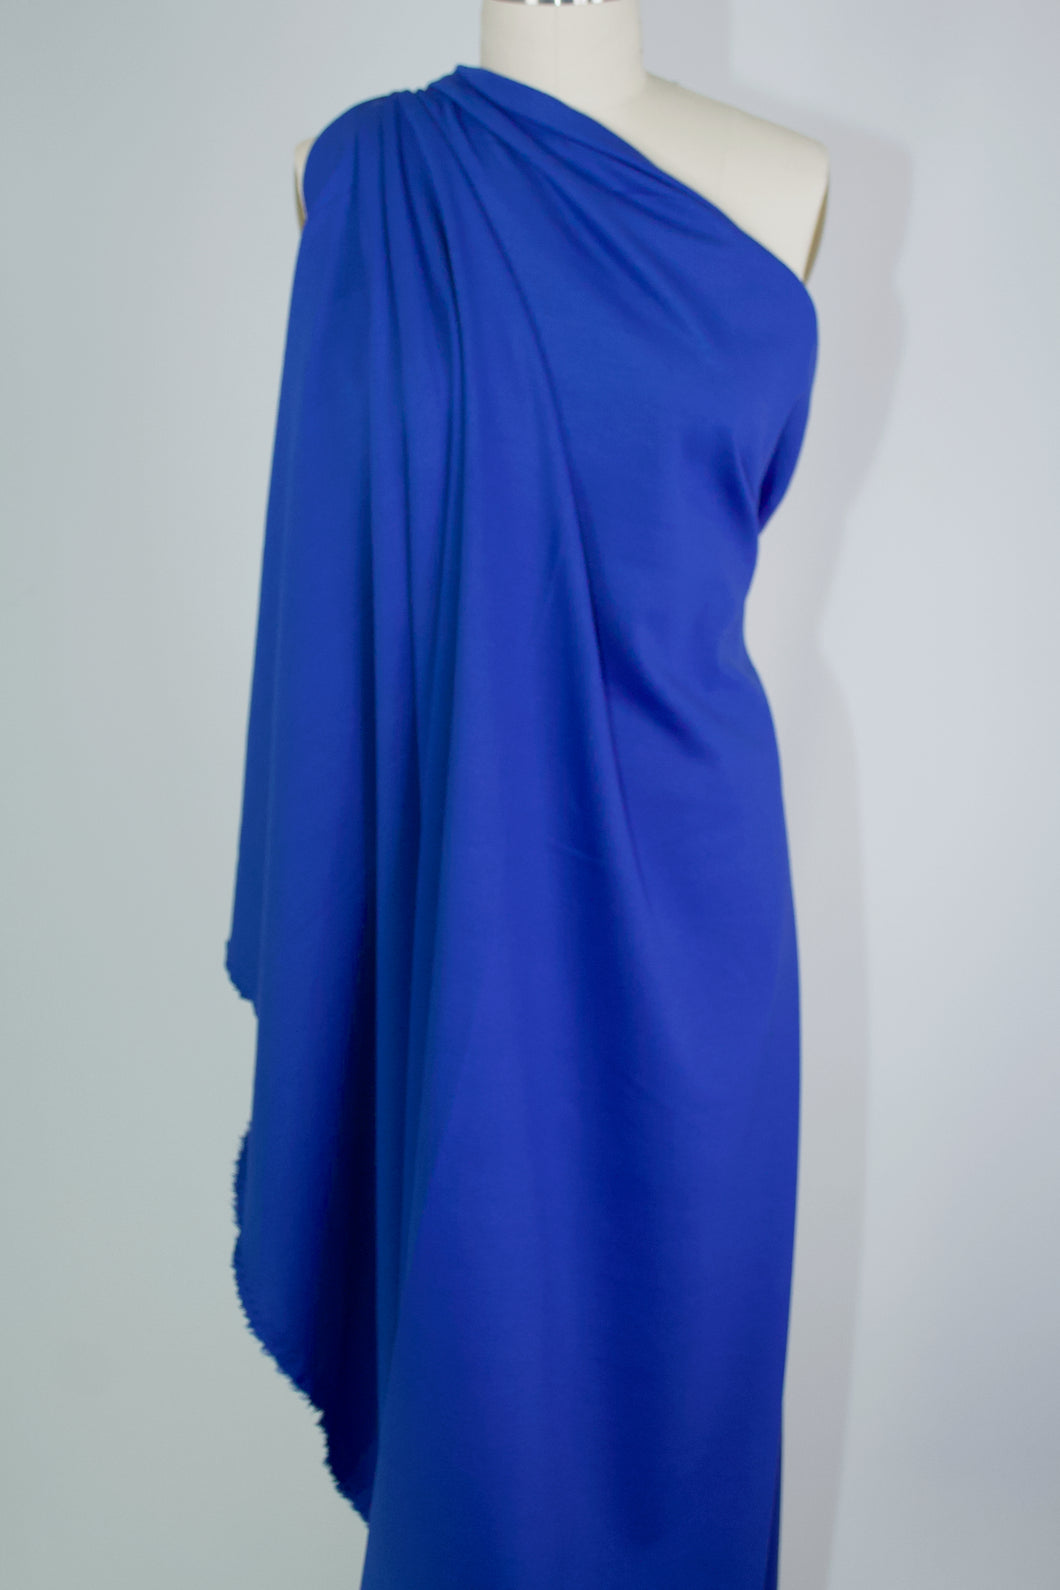 Extra Wide Designer Rayon Double Knit - Royal Blue